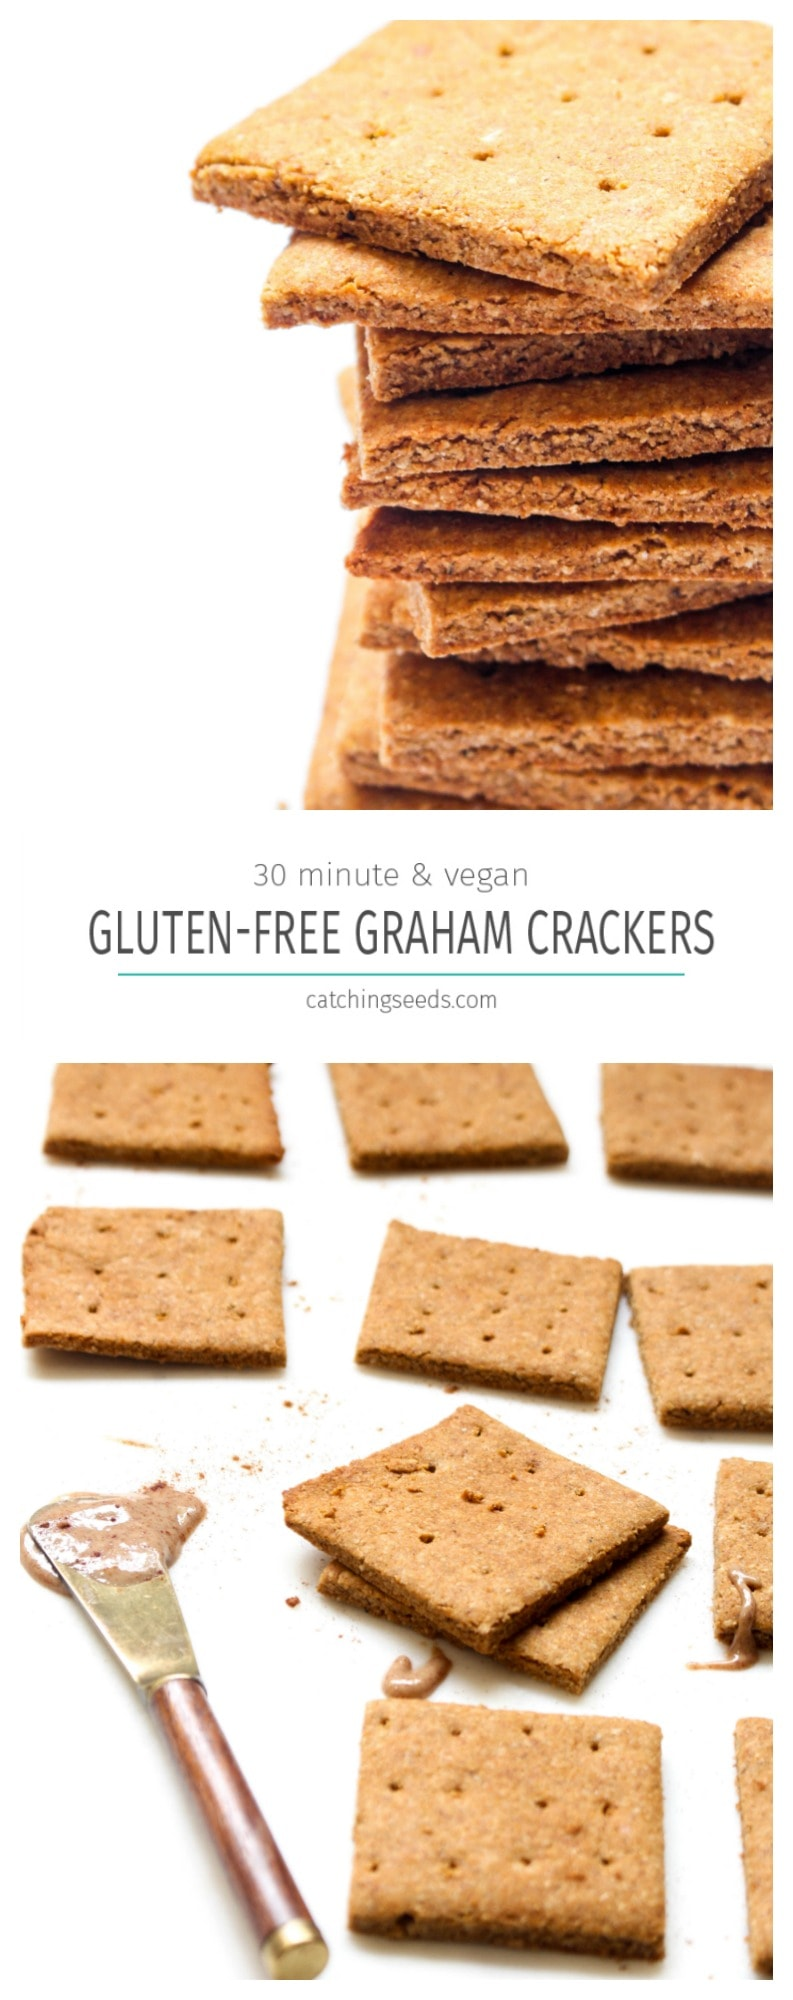 An easy allergy-friendly graham that is ready in 30 minutes!